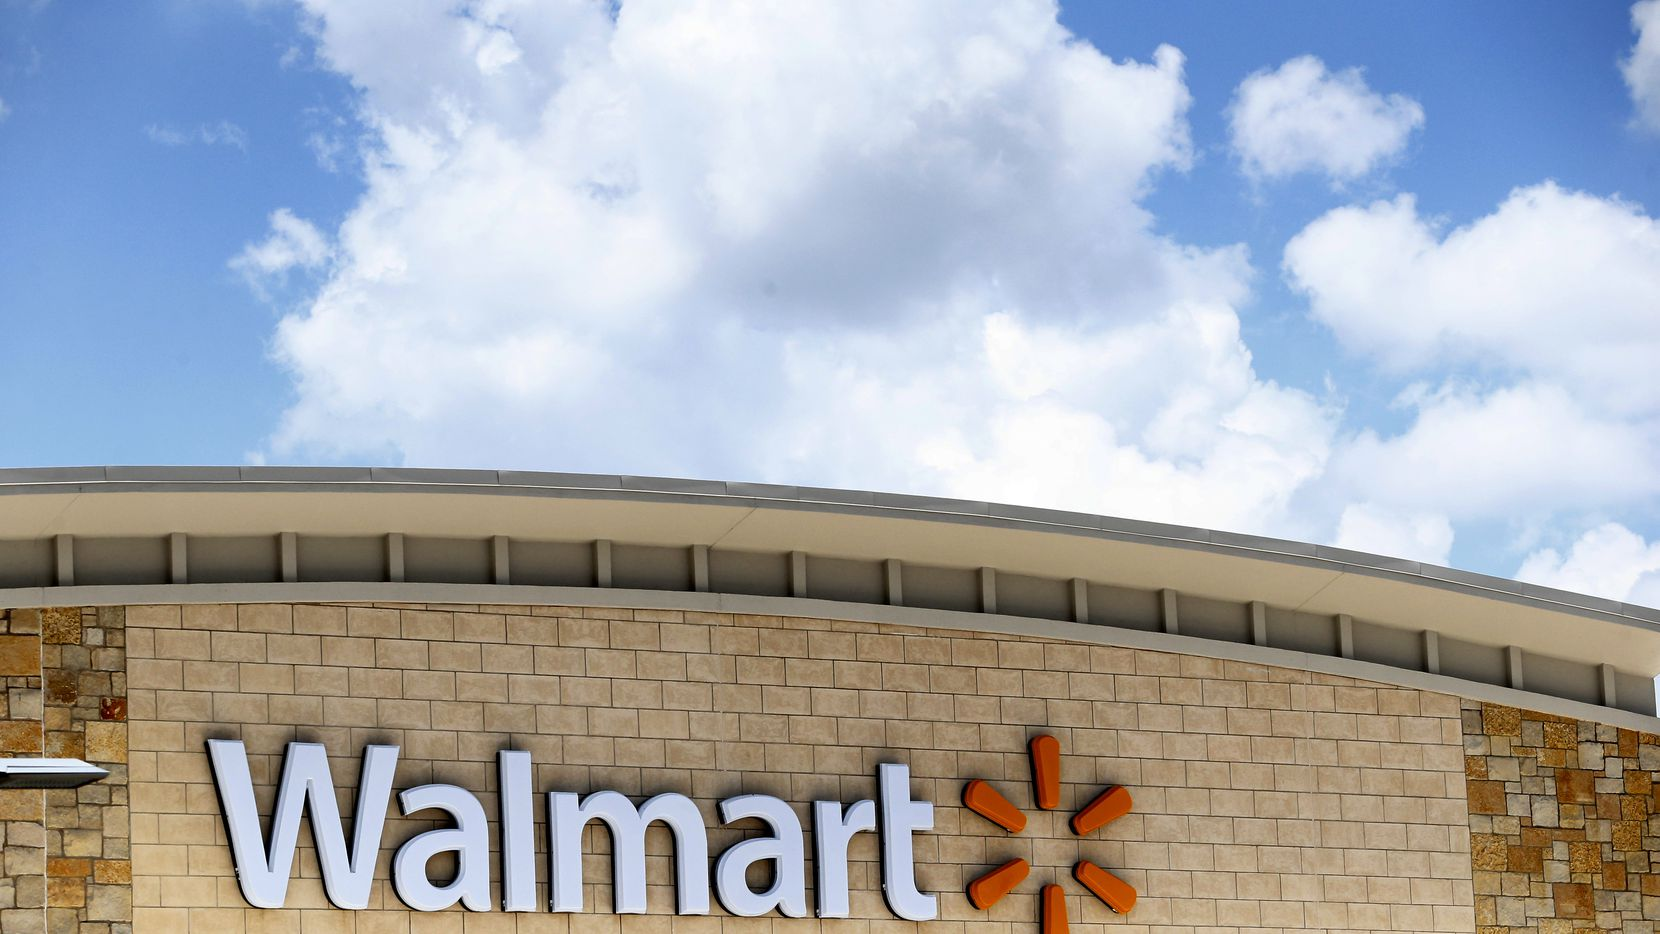 An exterior shot of the Walmart sign at Timber Creek Crossing in Dallas.